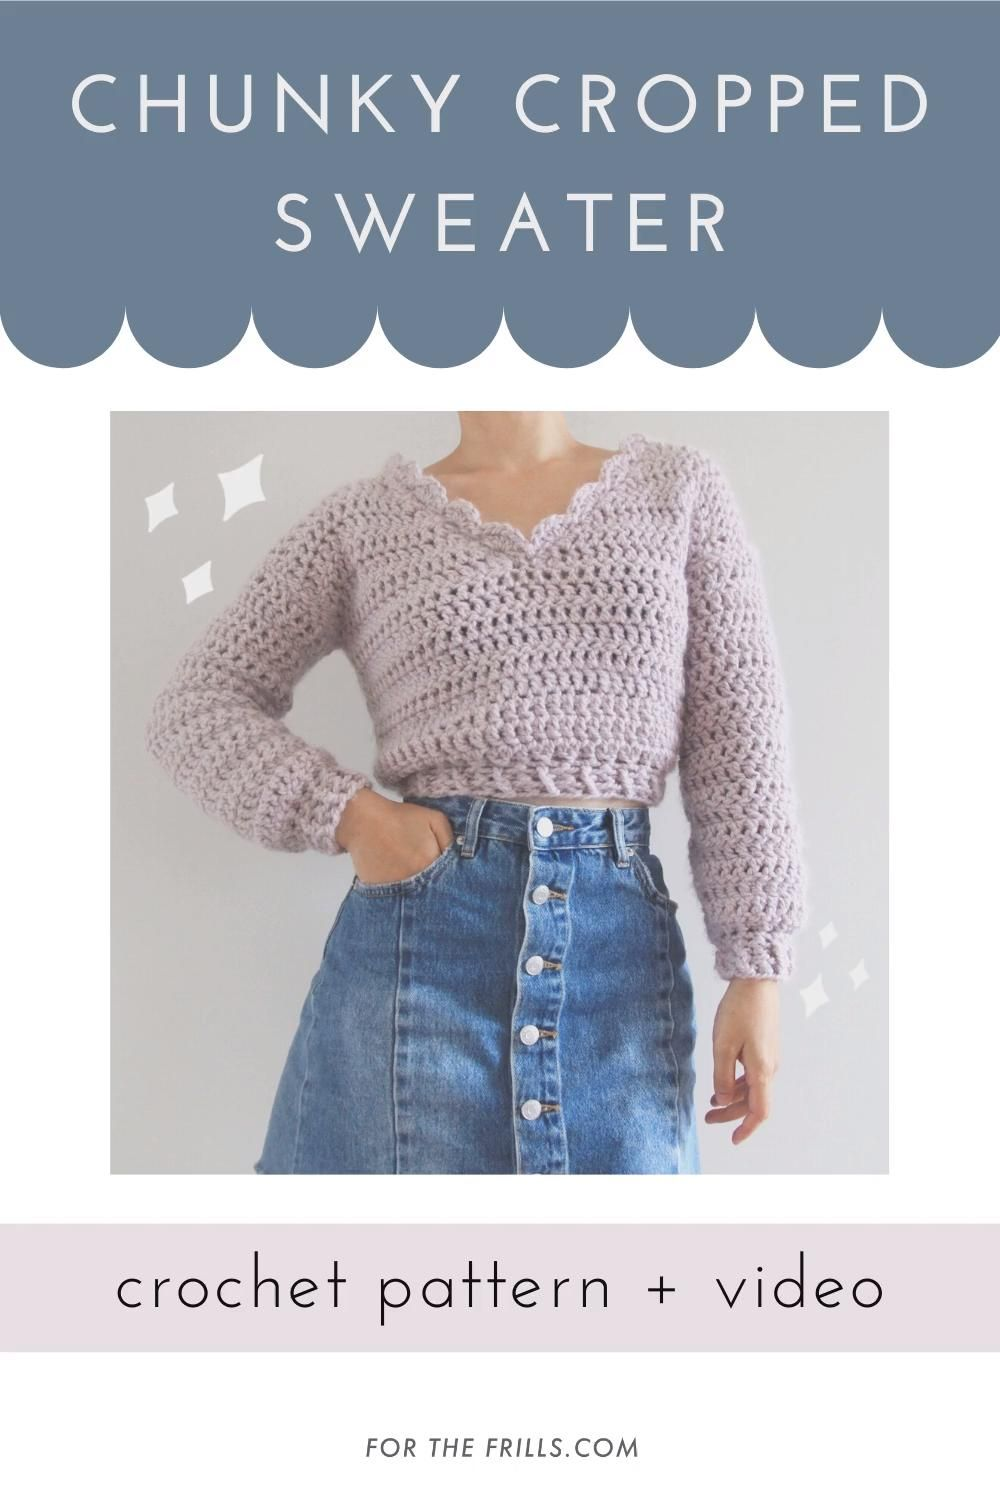 Chunky Cropped Sweater with Scallop Stitch V-neck – Crochet pattern + video tutorial - forthefrills